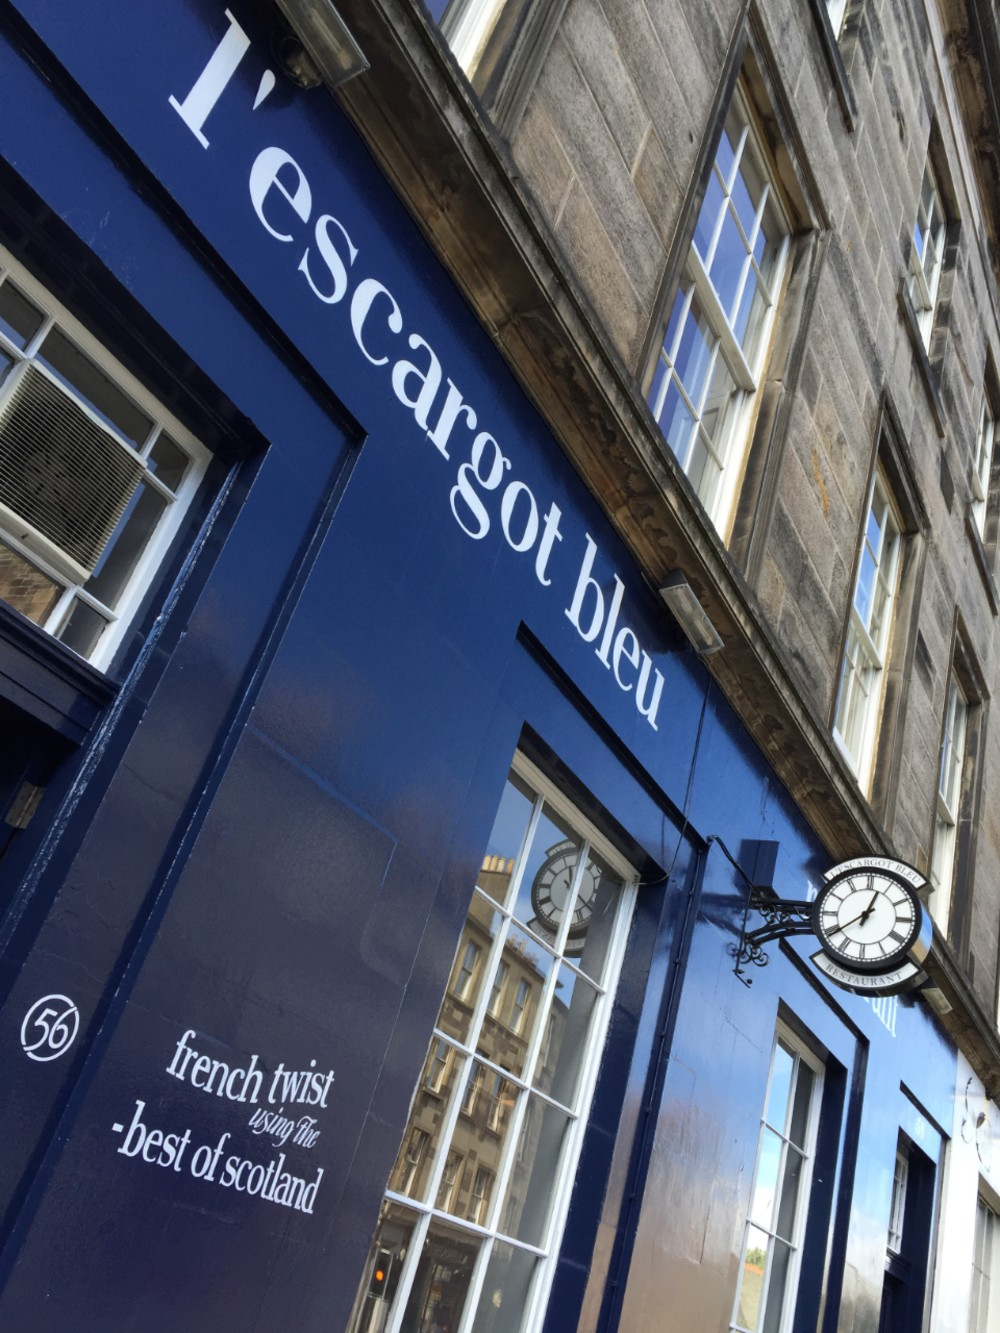 l'escargot bleu on Broughton Street re-opens this Thursday| By Deadline News- Food and Drinks News Scotland